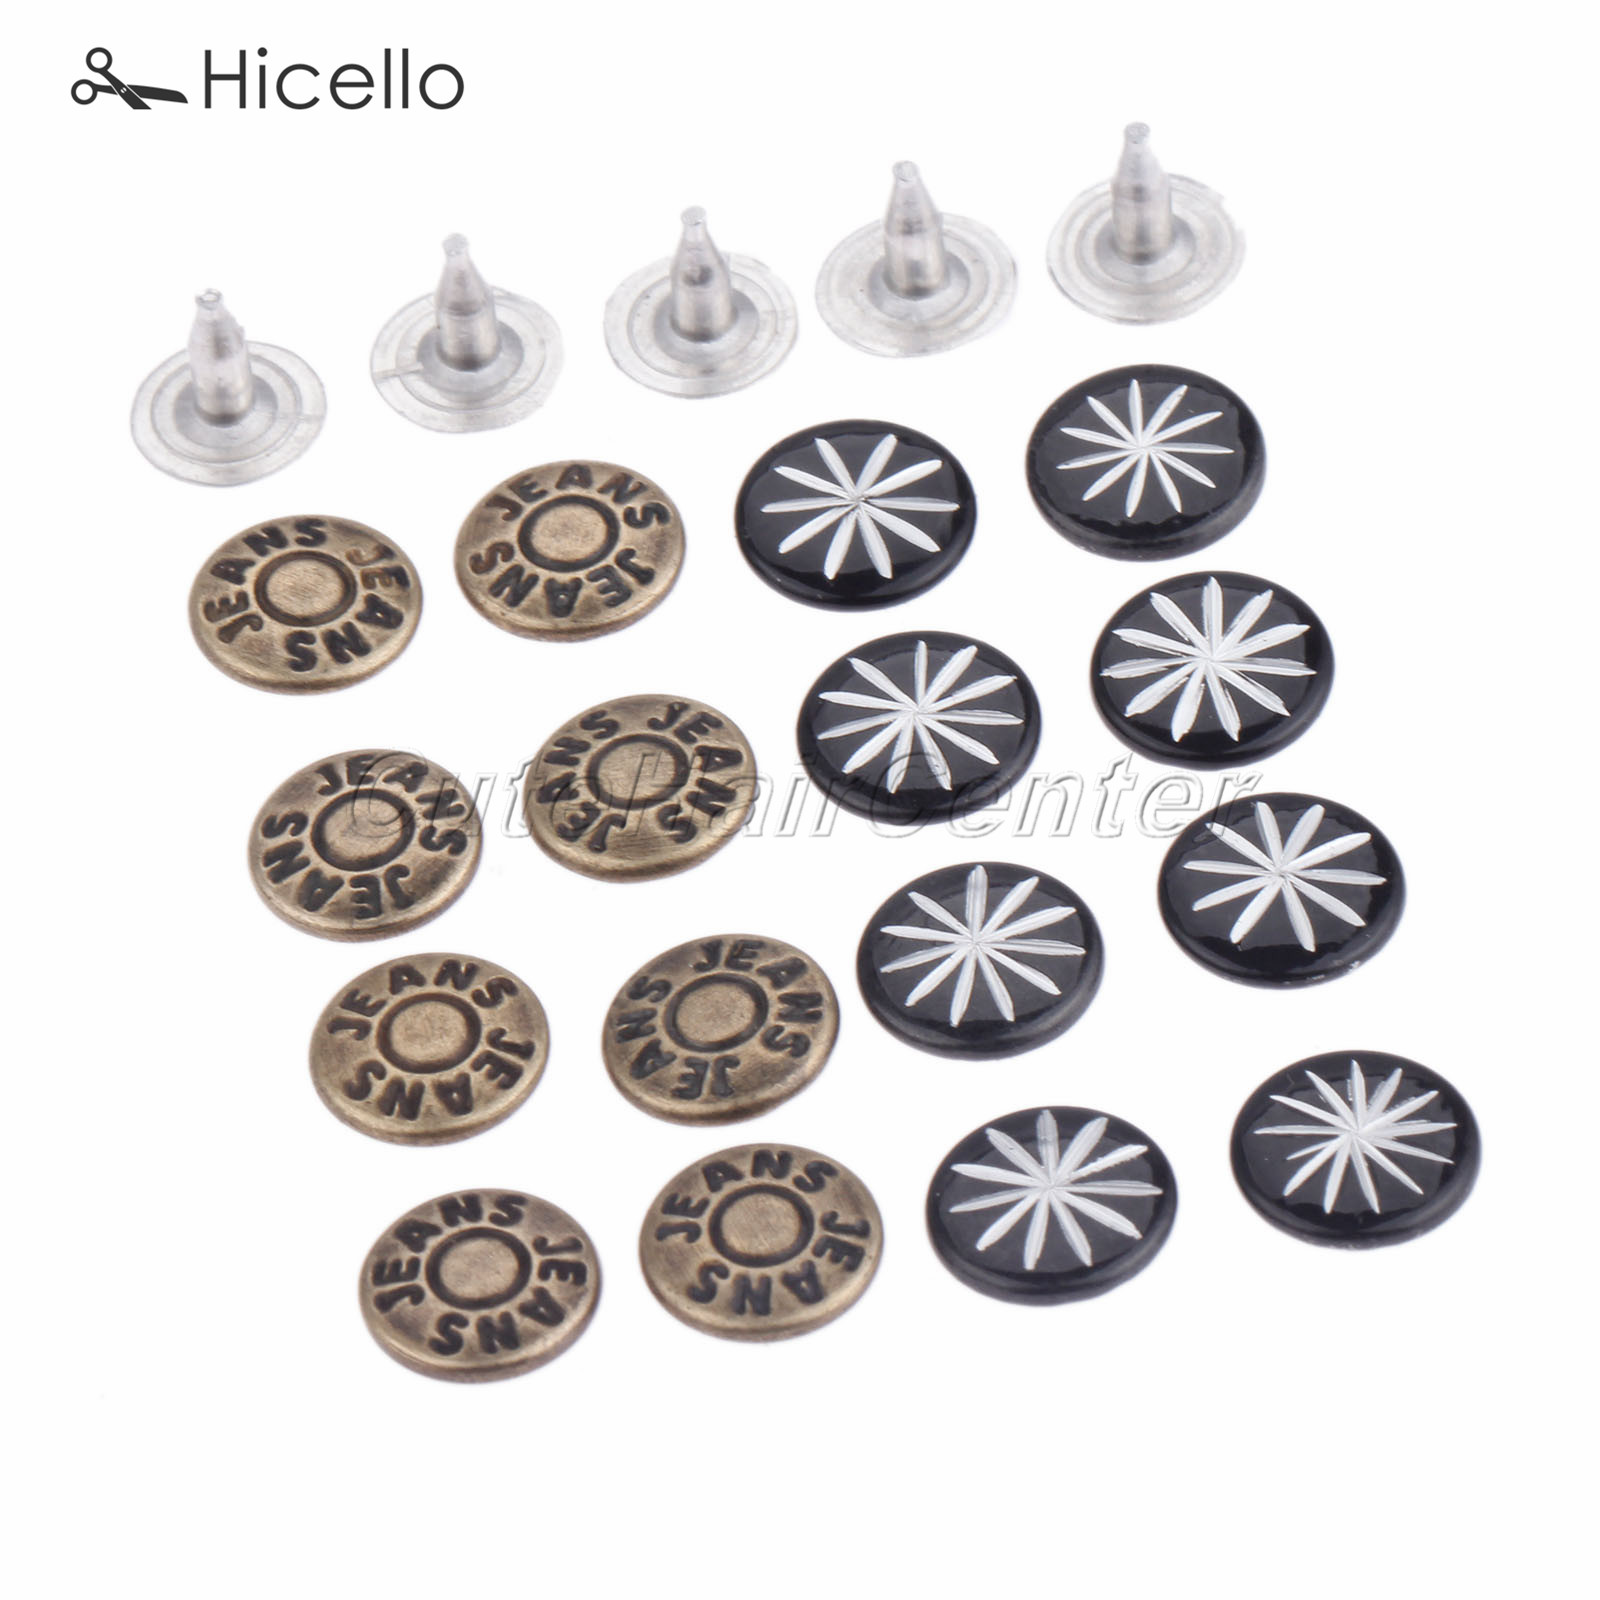 Learned 100sets Rivets Fasteners Studs Button With Nails Metal 9mm Bronze Black For Jeans Clothing Bags Boots Decoration Hicello Unequal In Performance Apparel Sewing & Fabric Buttons